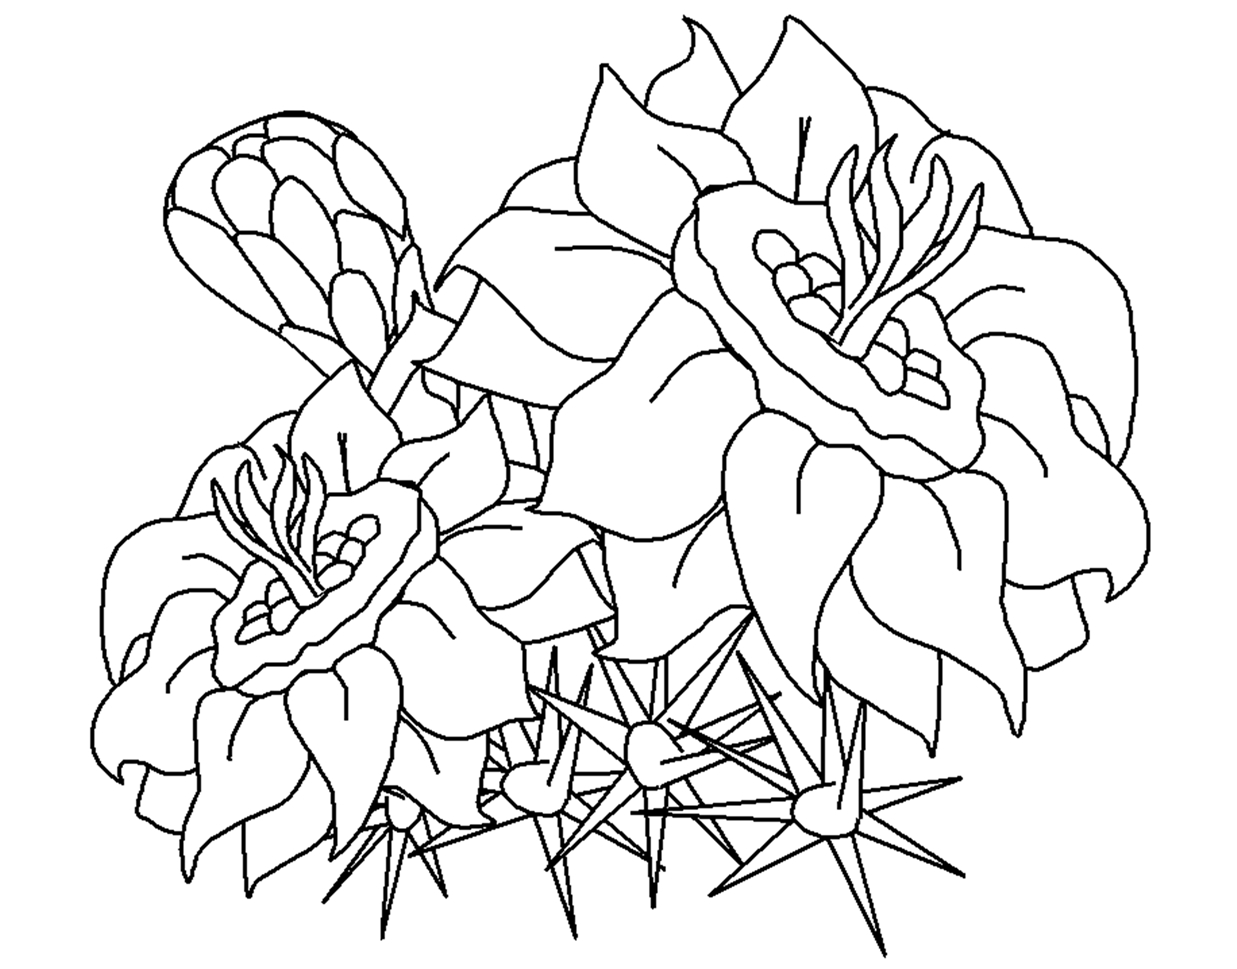 flower coloring pages kids - photo#36